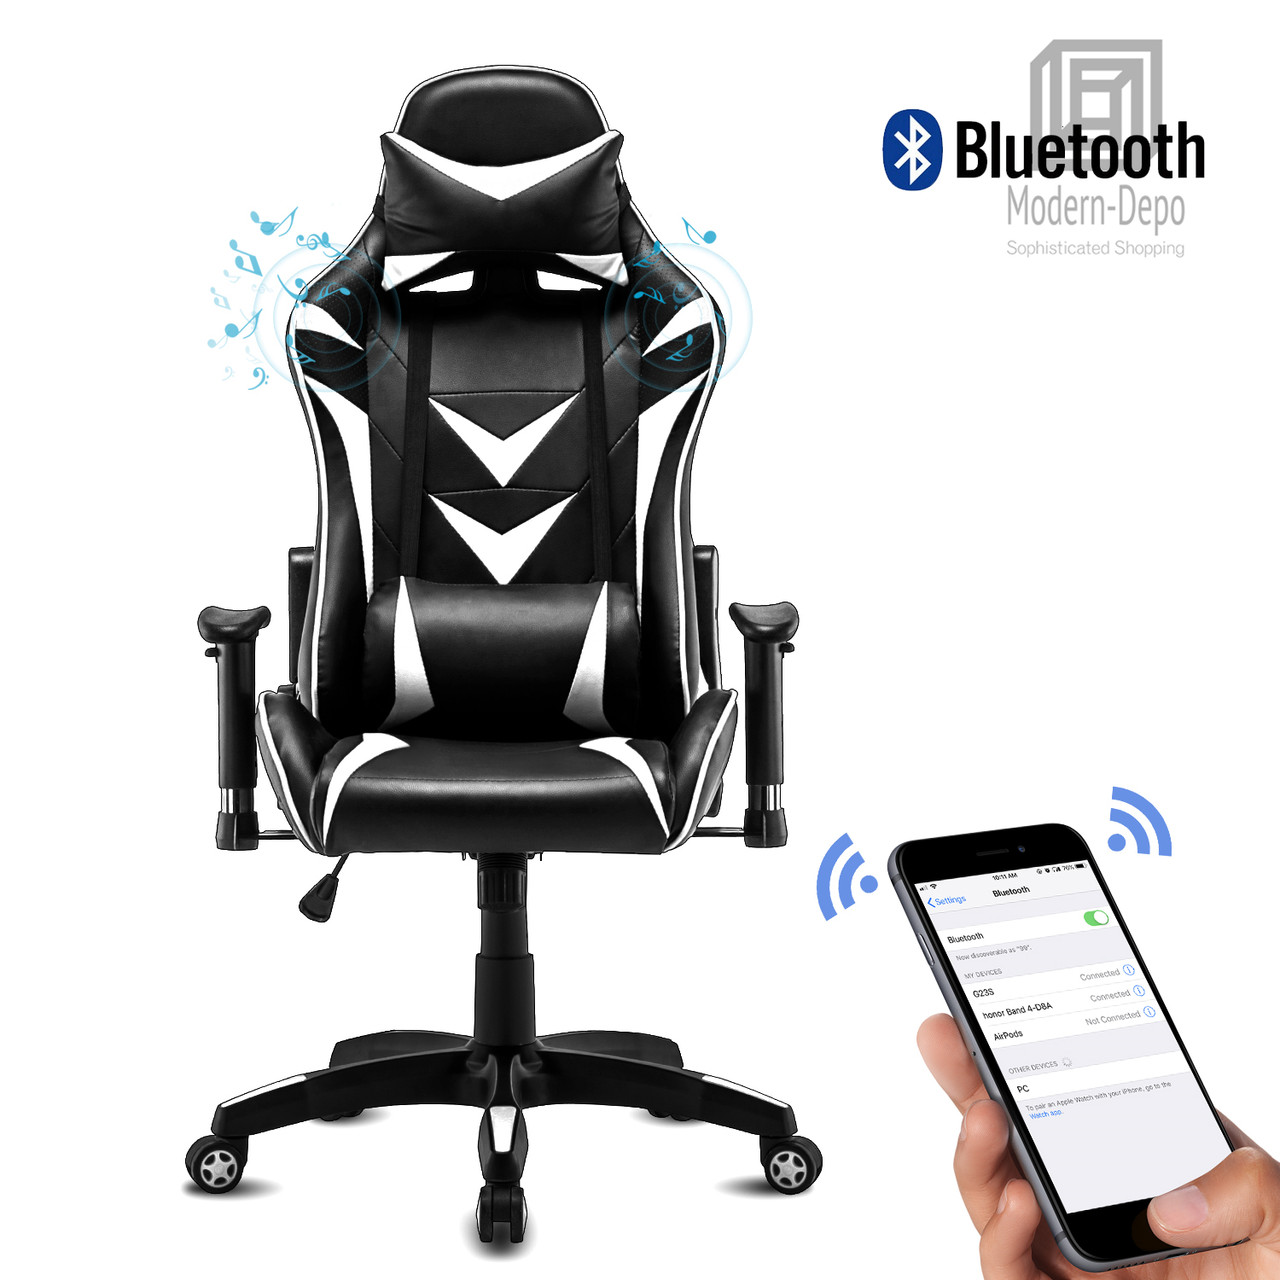 Height Adjustable Swivel Office Chair High-Back Recliner Modern-Depo Gaming Chair with Headrest and Lumbar Support White